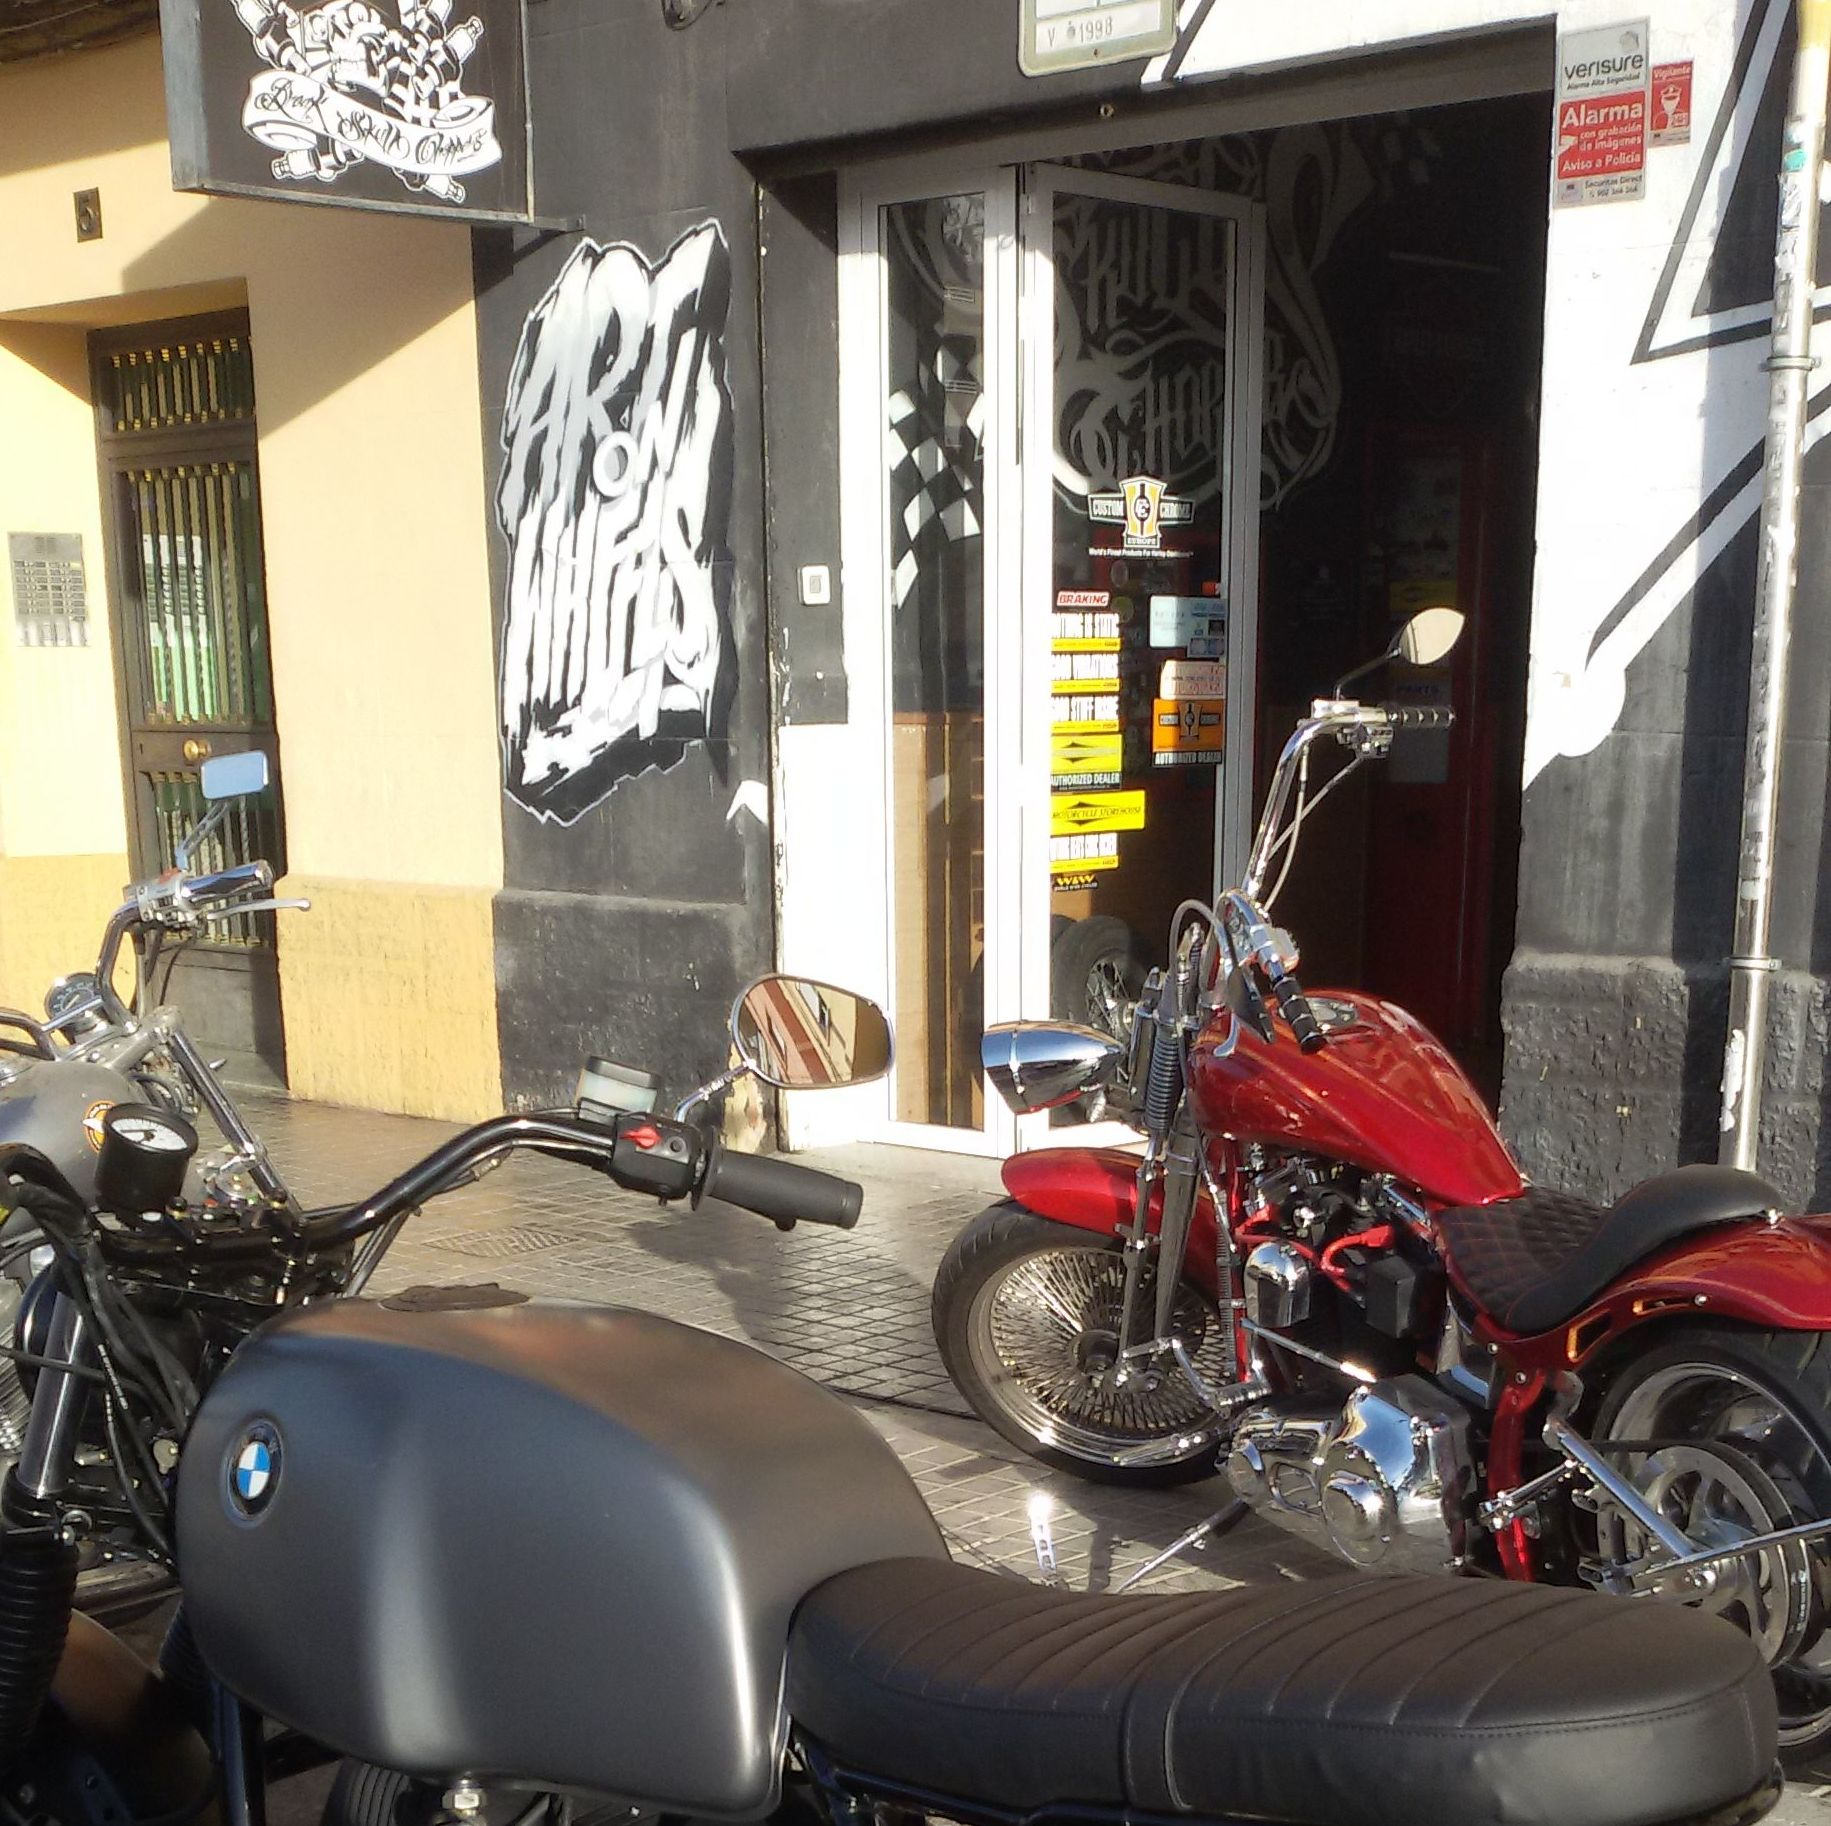 #breakskullchoppers#custom#harleydavidson#bmwmotorcycle#luxury#customizarmotosenvalencia#transformacionmotos